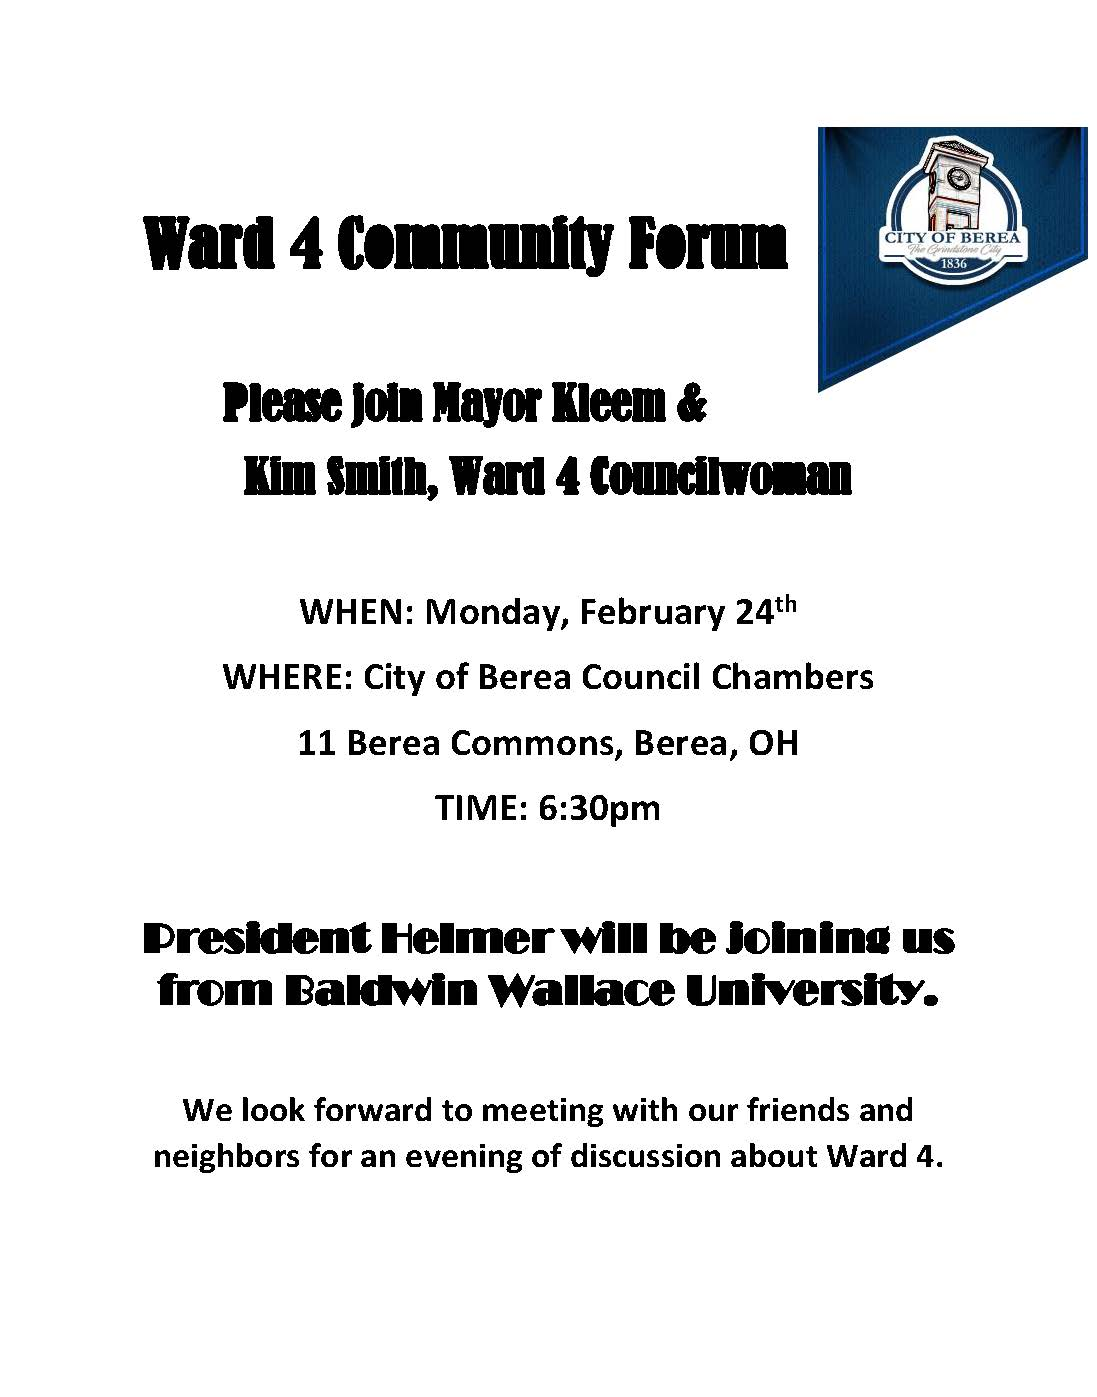 Ward 4 Community Forum flyer